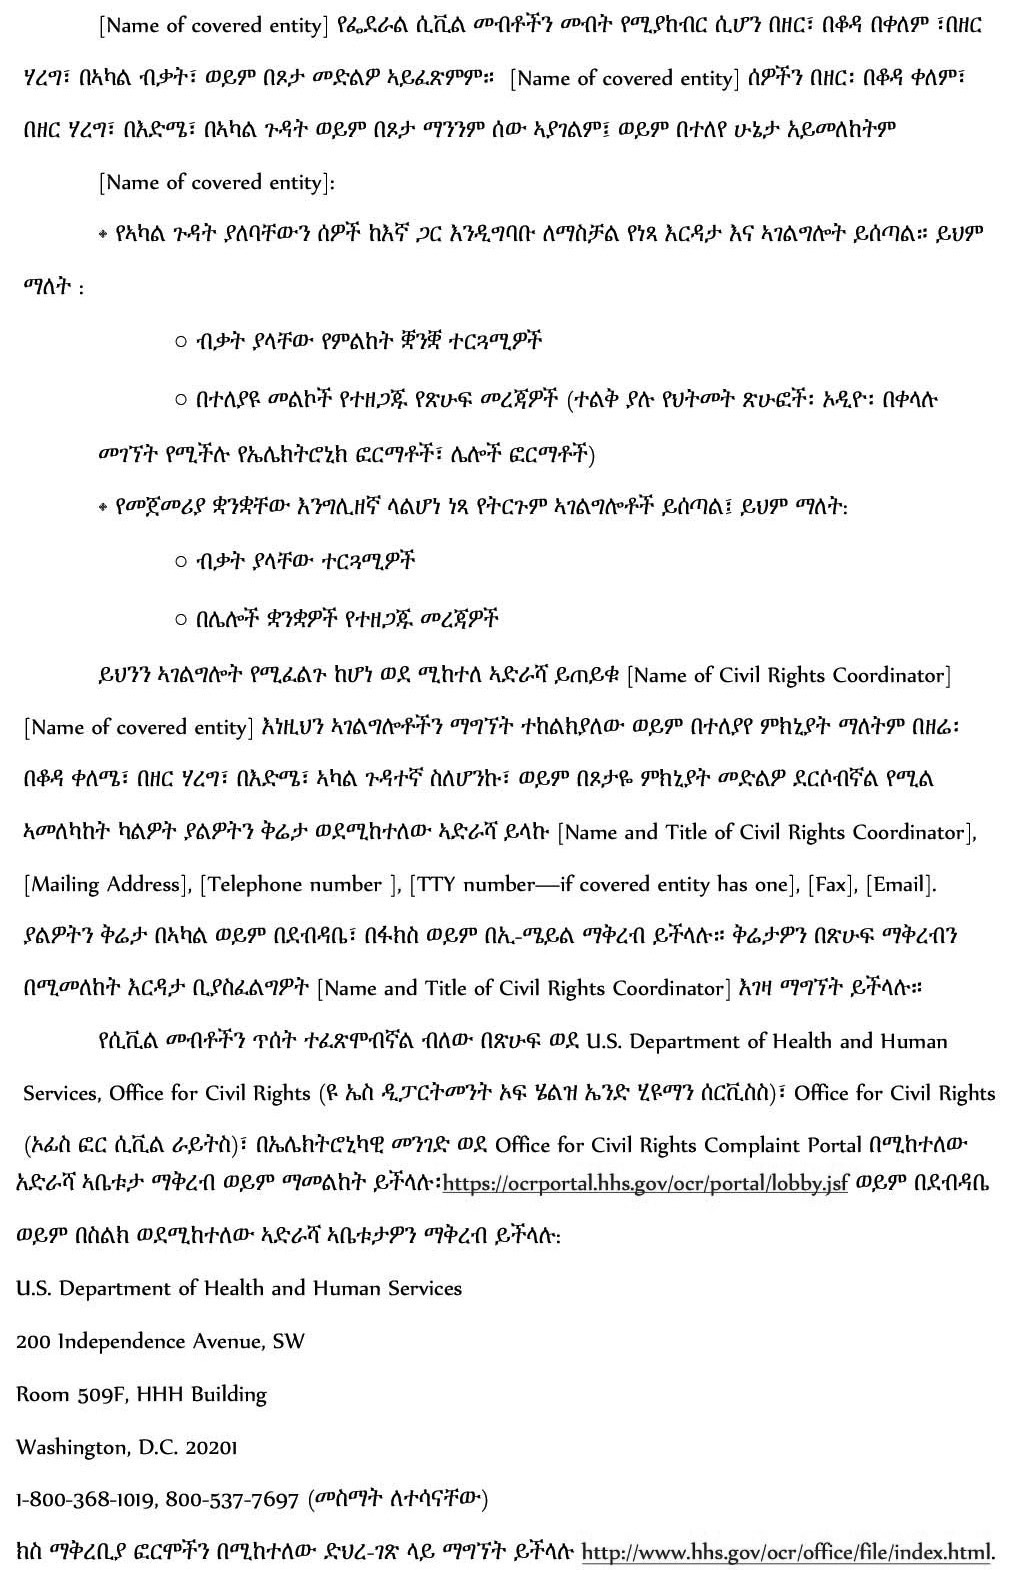 sample ce notice amharic